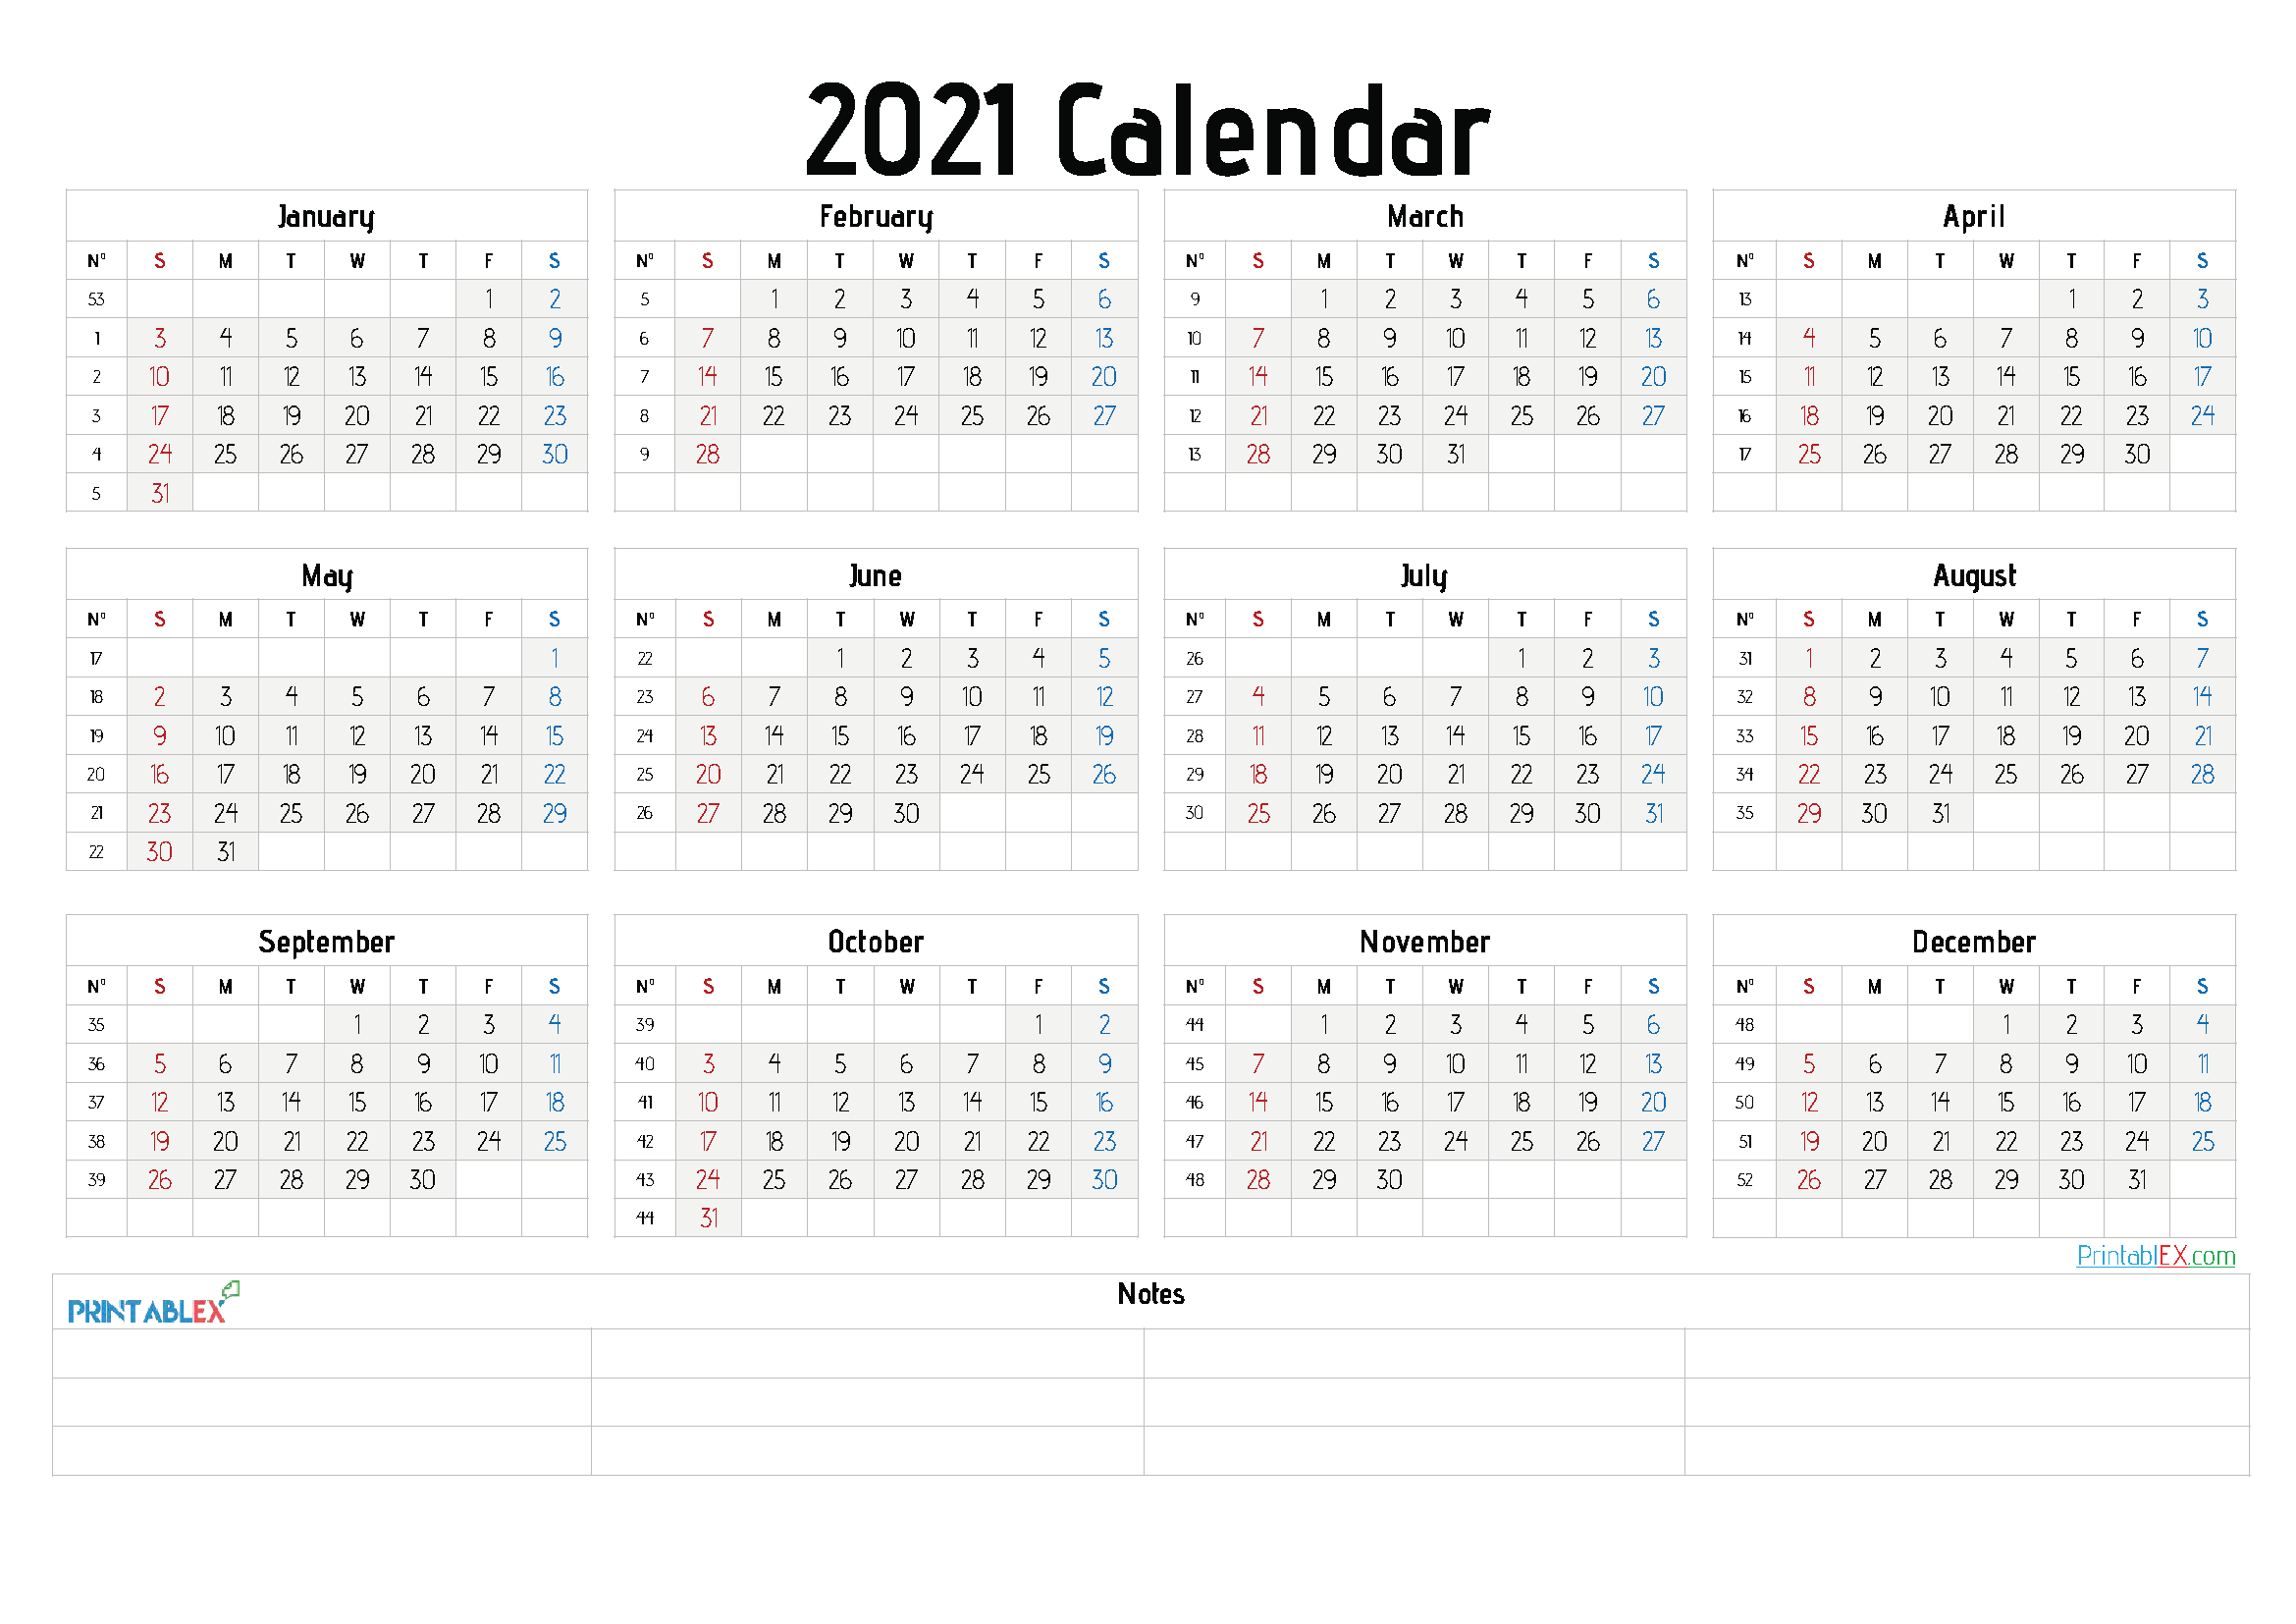 2021 Calendar Templates Editable By Word / Free Google ...